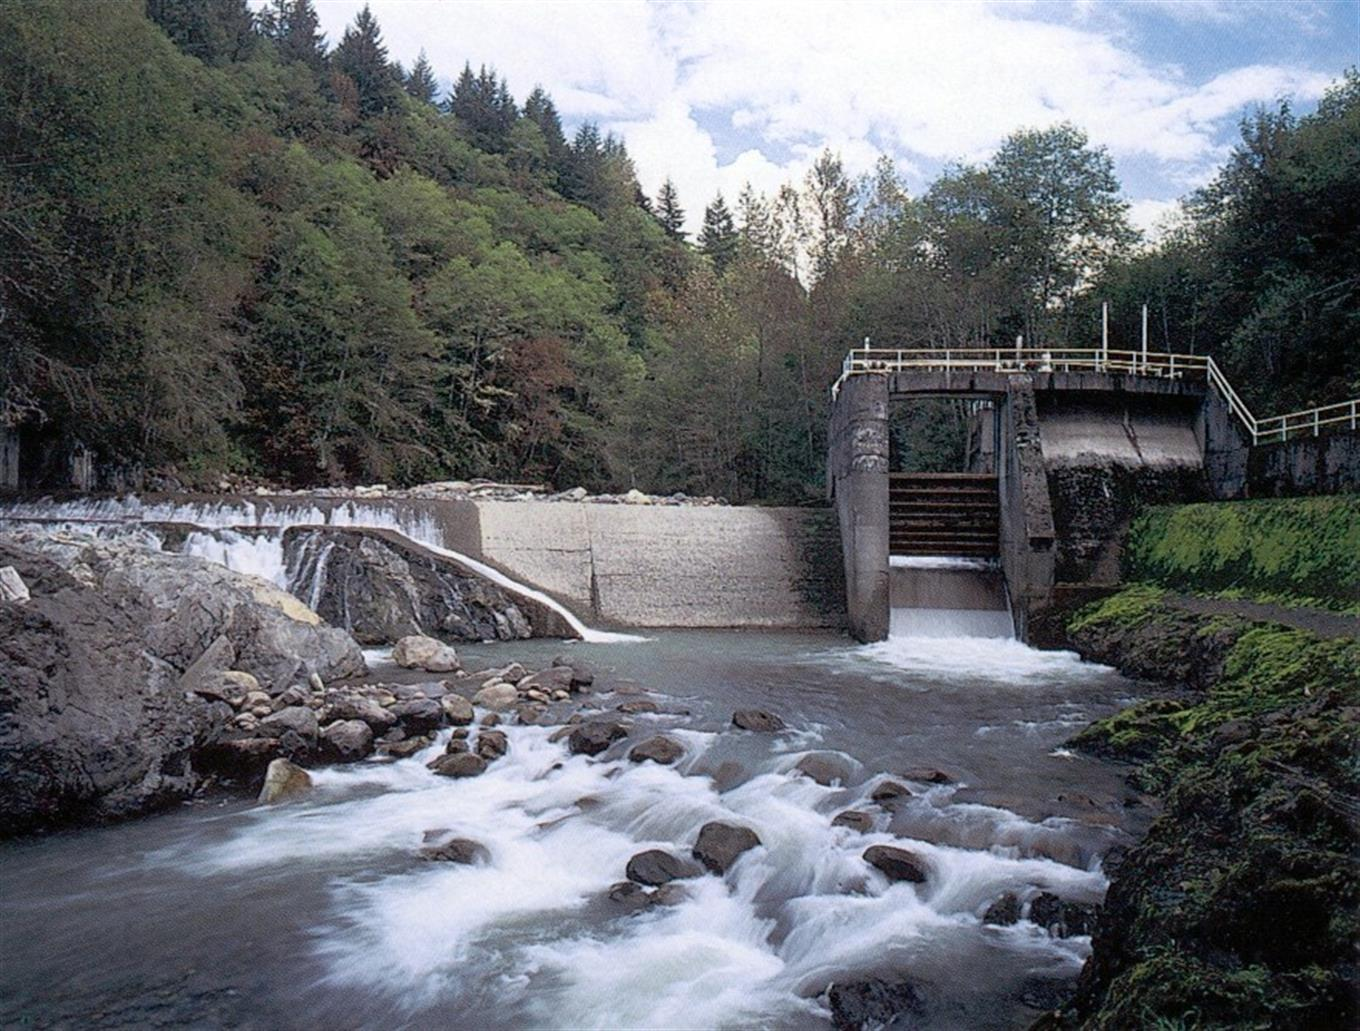 On the last day before the 2019 Washington State legislative session officially concluded, state lawmakers approved a  capital budget  that provides the majority of funding needed for the  Middle Fork Nooksack River Fish Passage  project, a key legislative priority of the City of Bellingham.